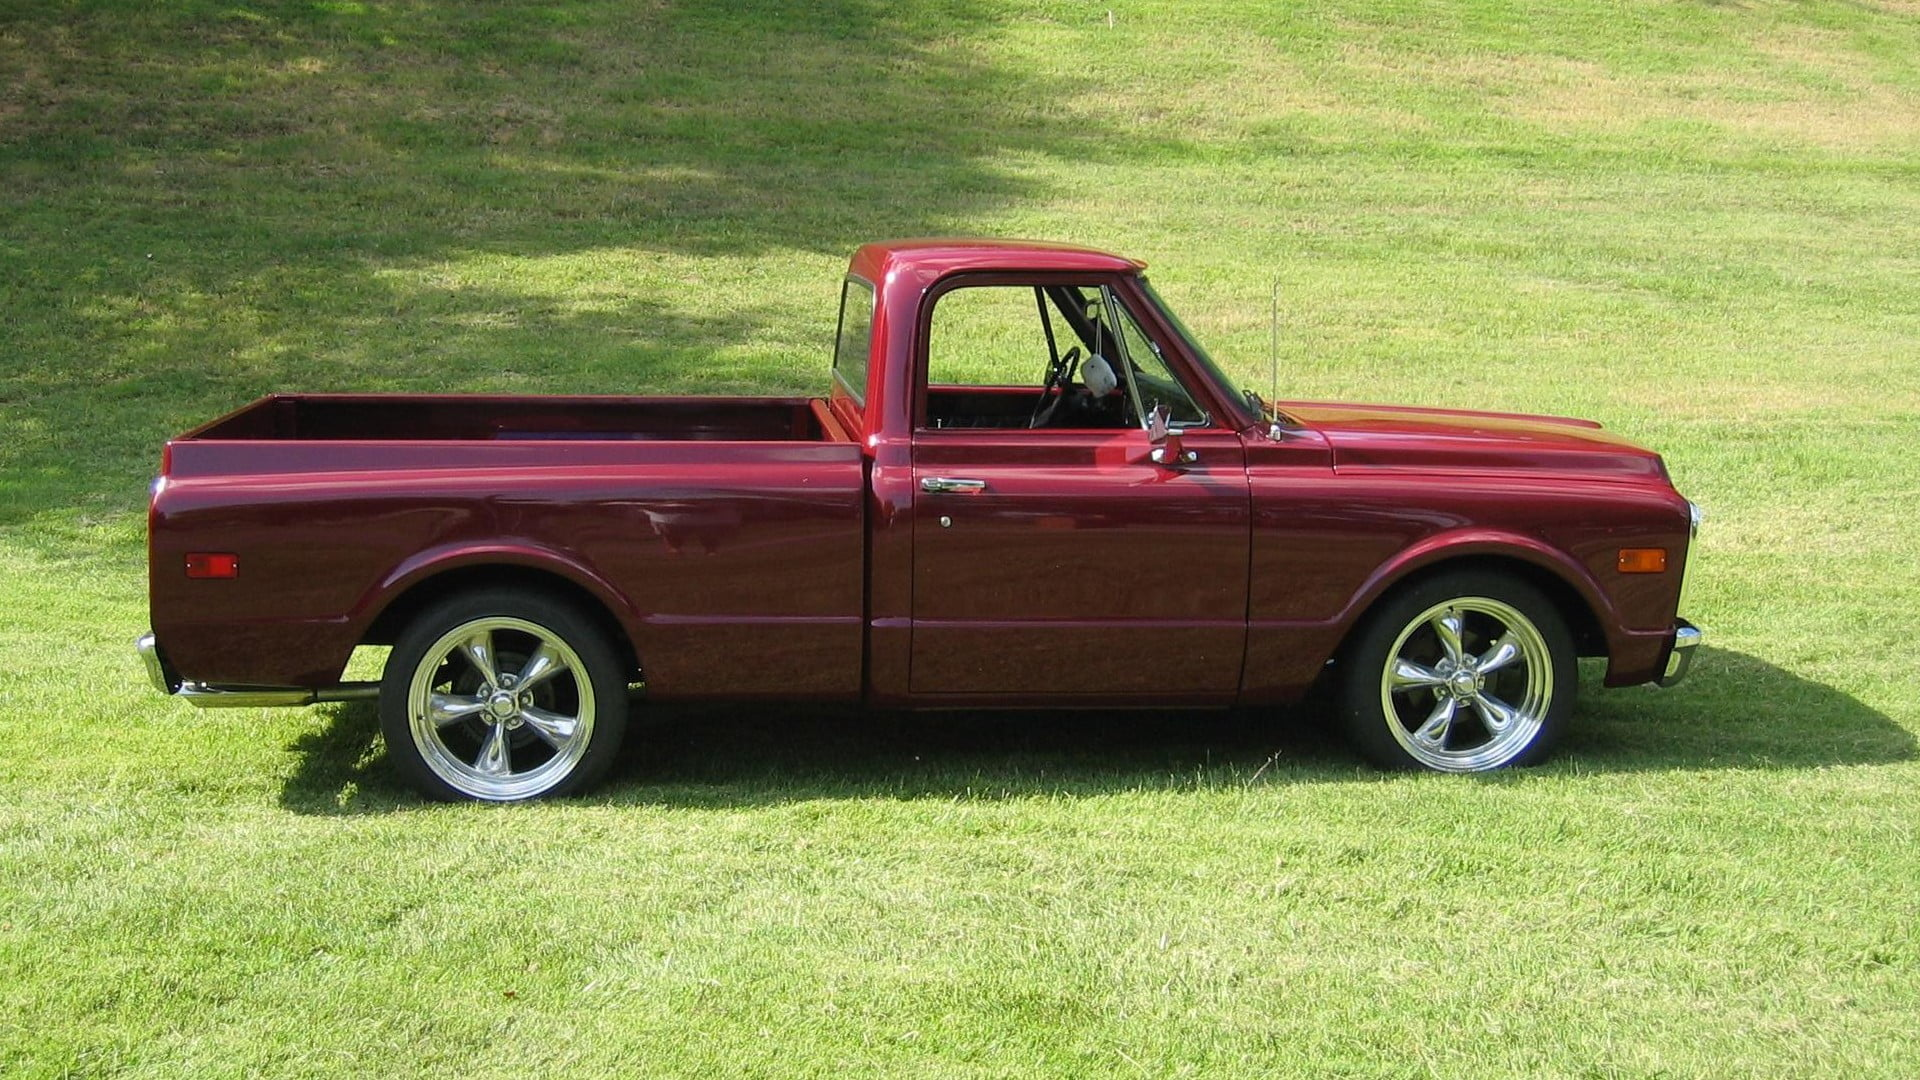 hight resolution of red single cab pickup truck muscle cars chevy chevrolet c k